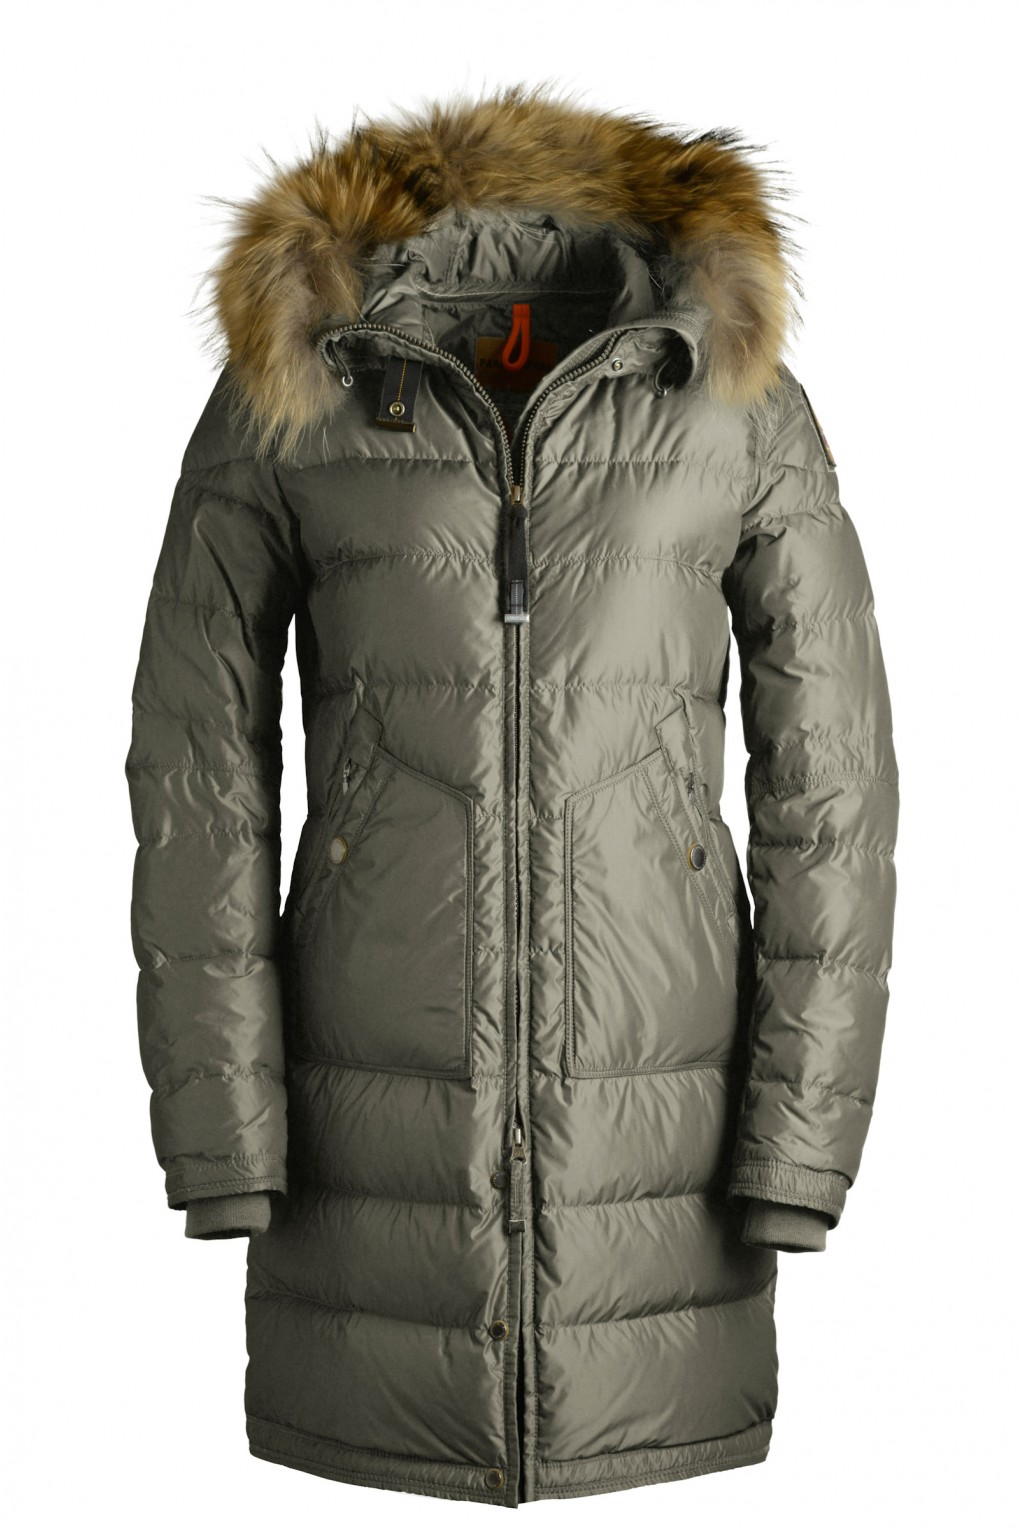 parajumpers LIGHT LONG BEAR woman outerwear Sage